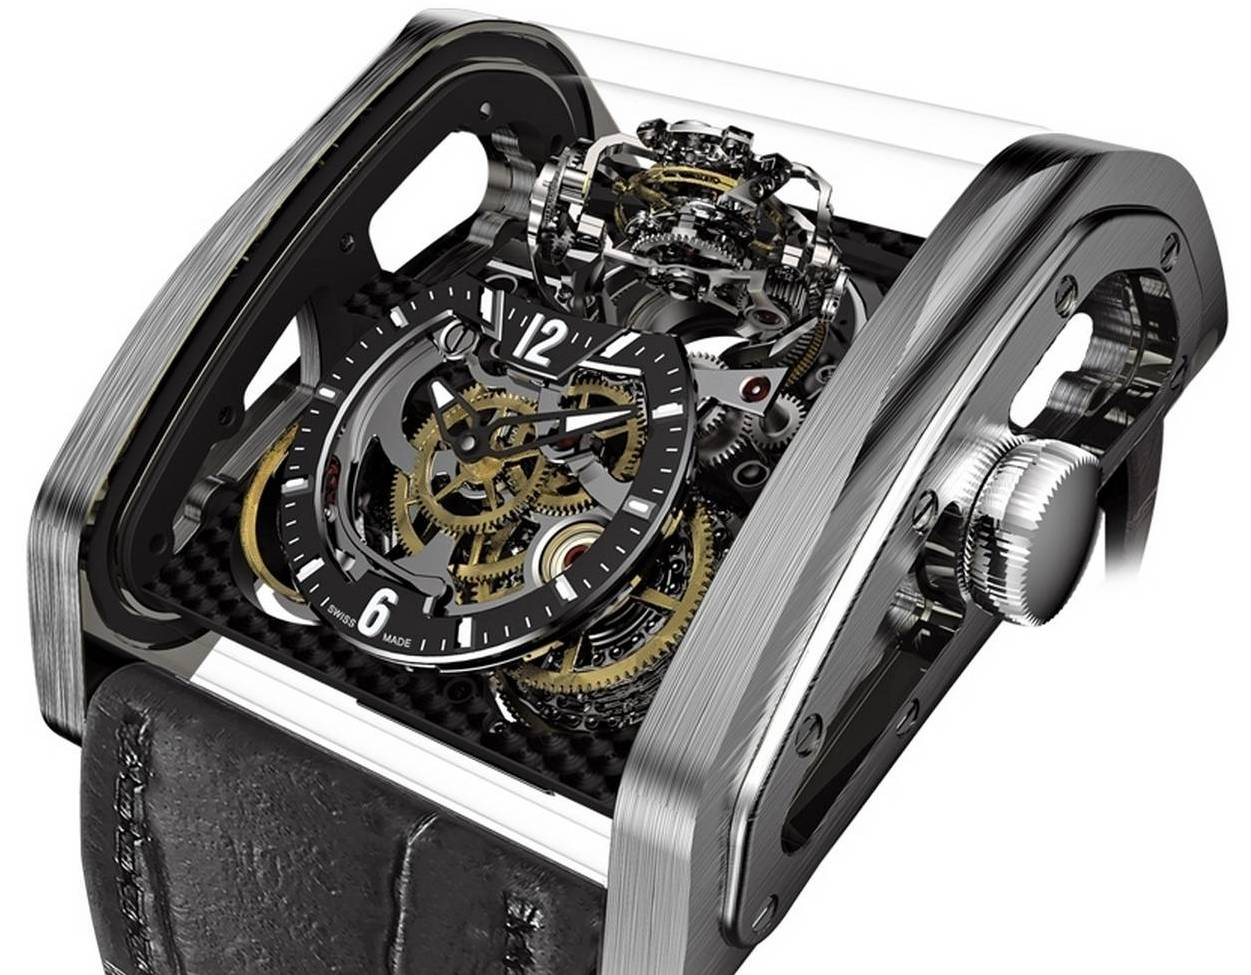 anteprima-baselworld-2016-cabestan-triple-axis-tourbillon_0-1001